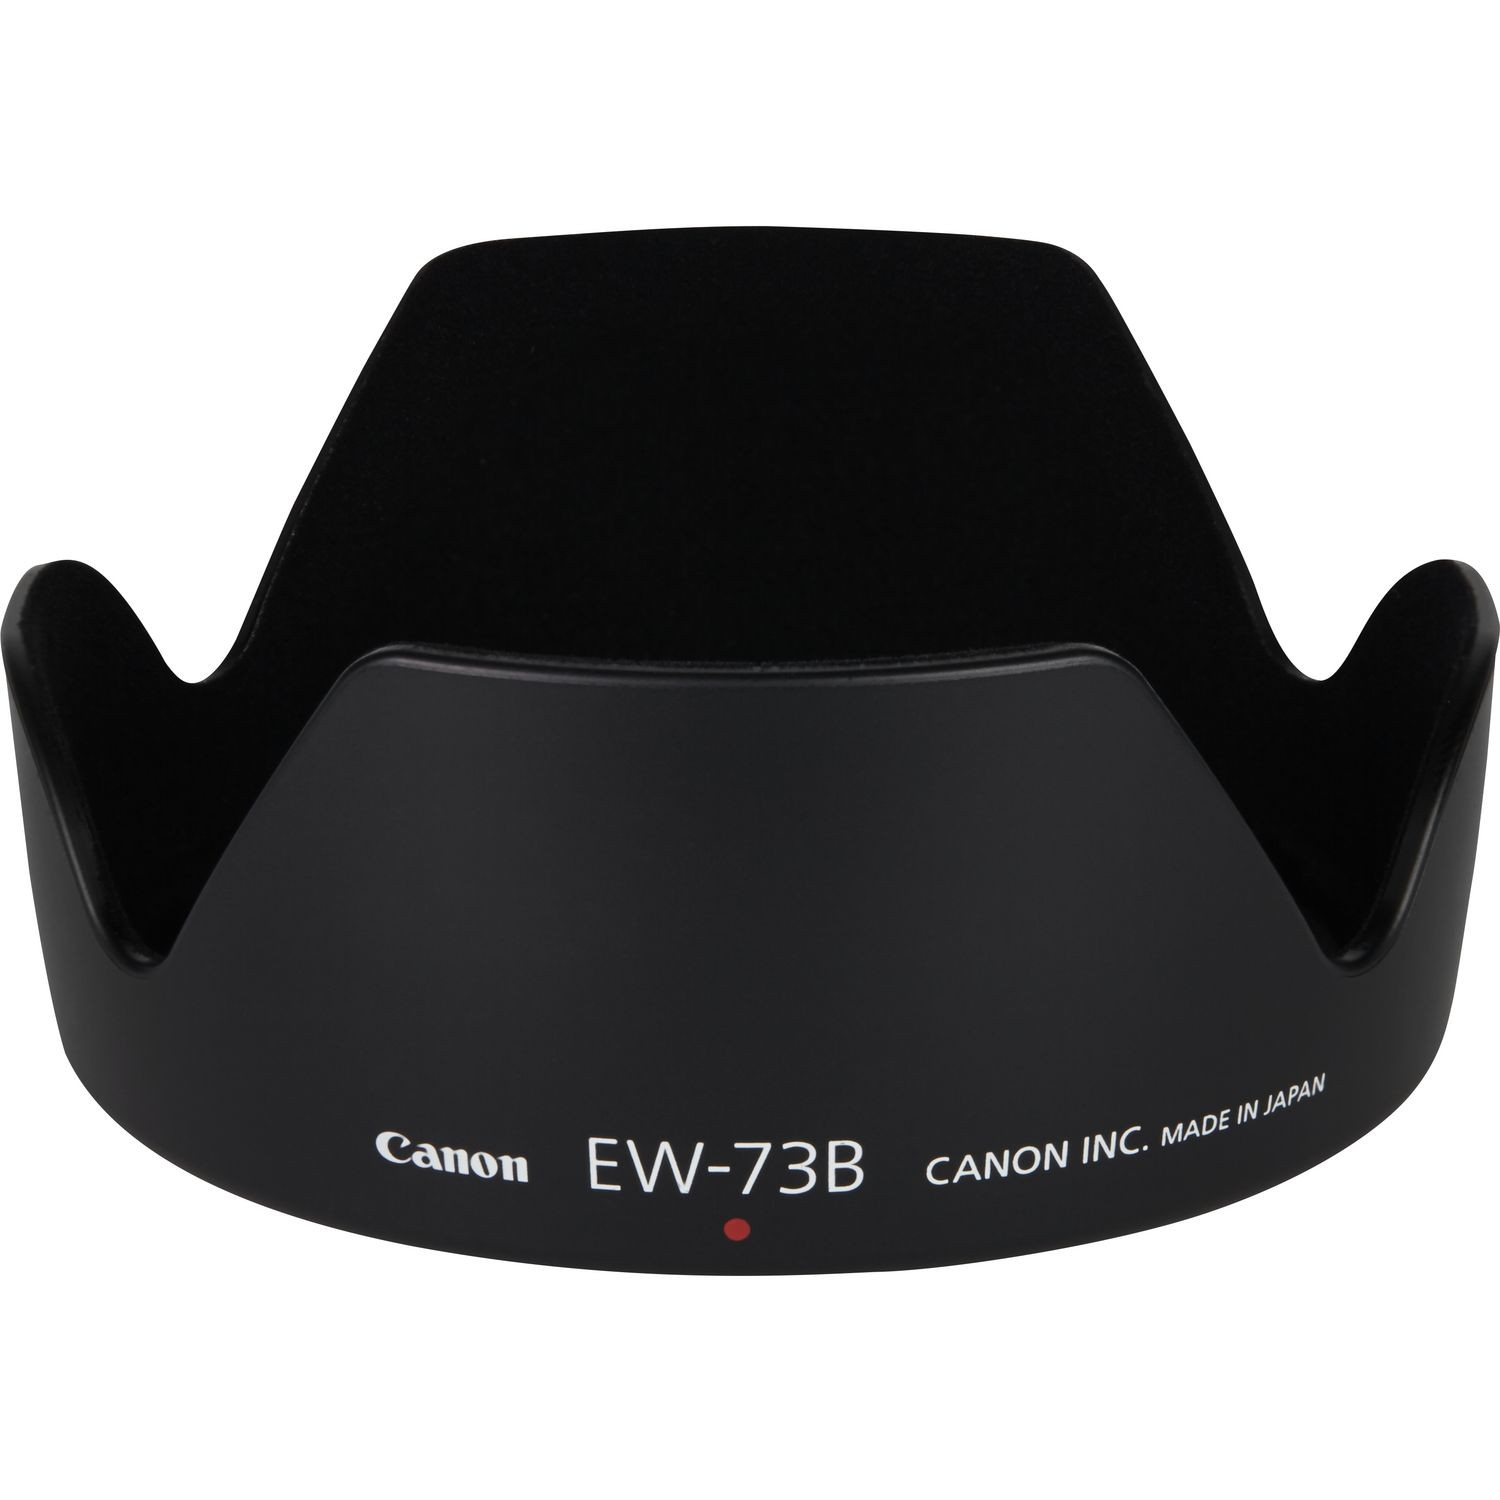 Paraluce Canon EW-73B per EF-S 17-85mm f/4-5.6 IS USM ed EF-S 18-135mm f/3.5-5.6 IS STM